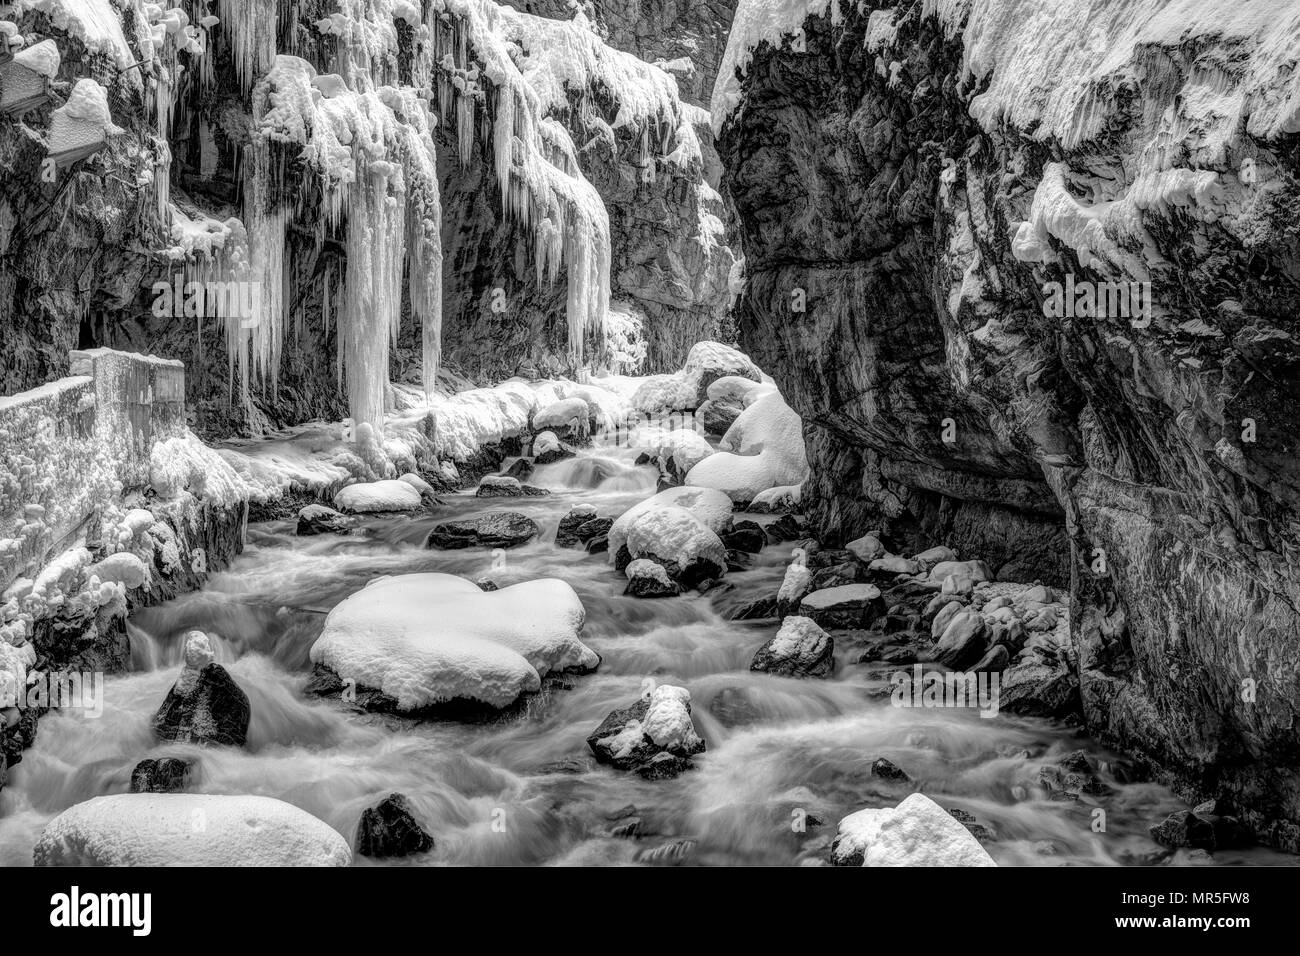 Winter in Bavaria - Partnach Gorge. Winter in Bayern - Partnachklamm. Stock Photo